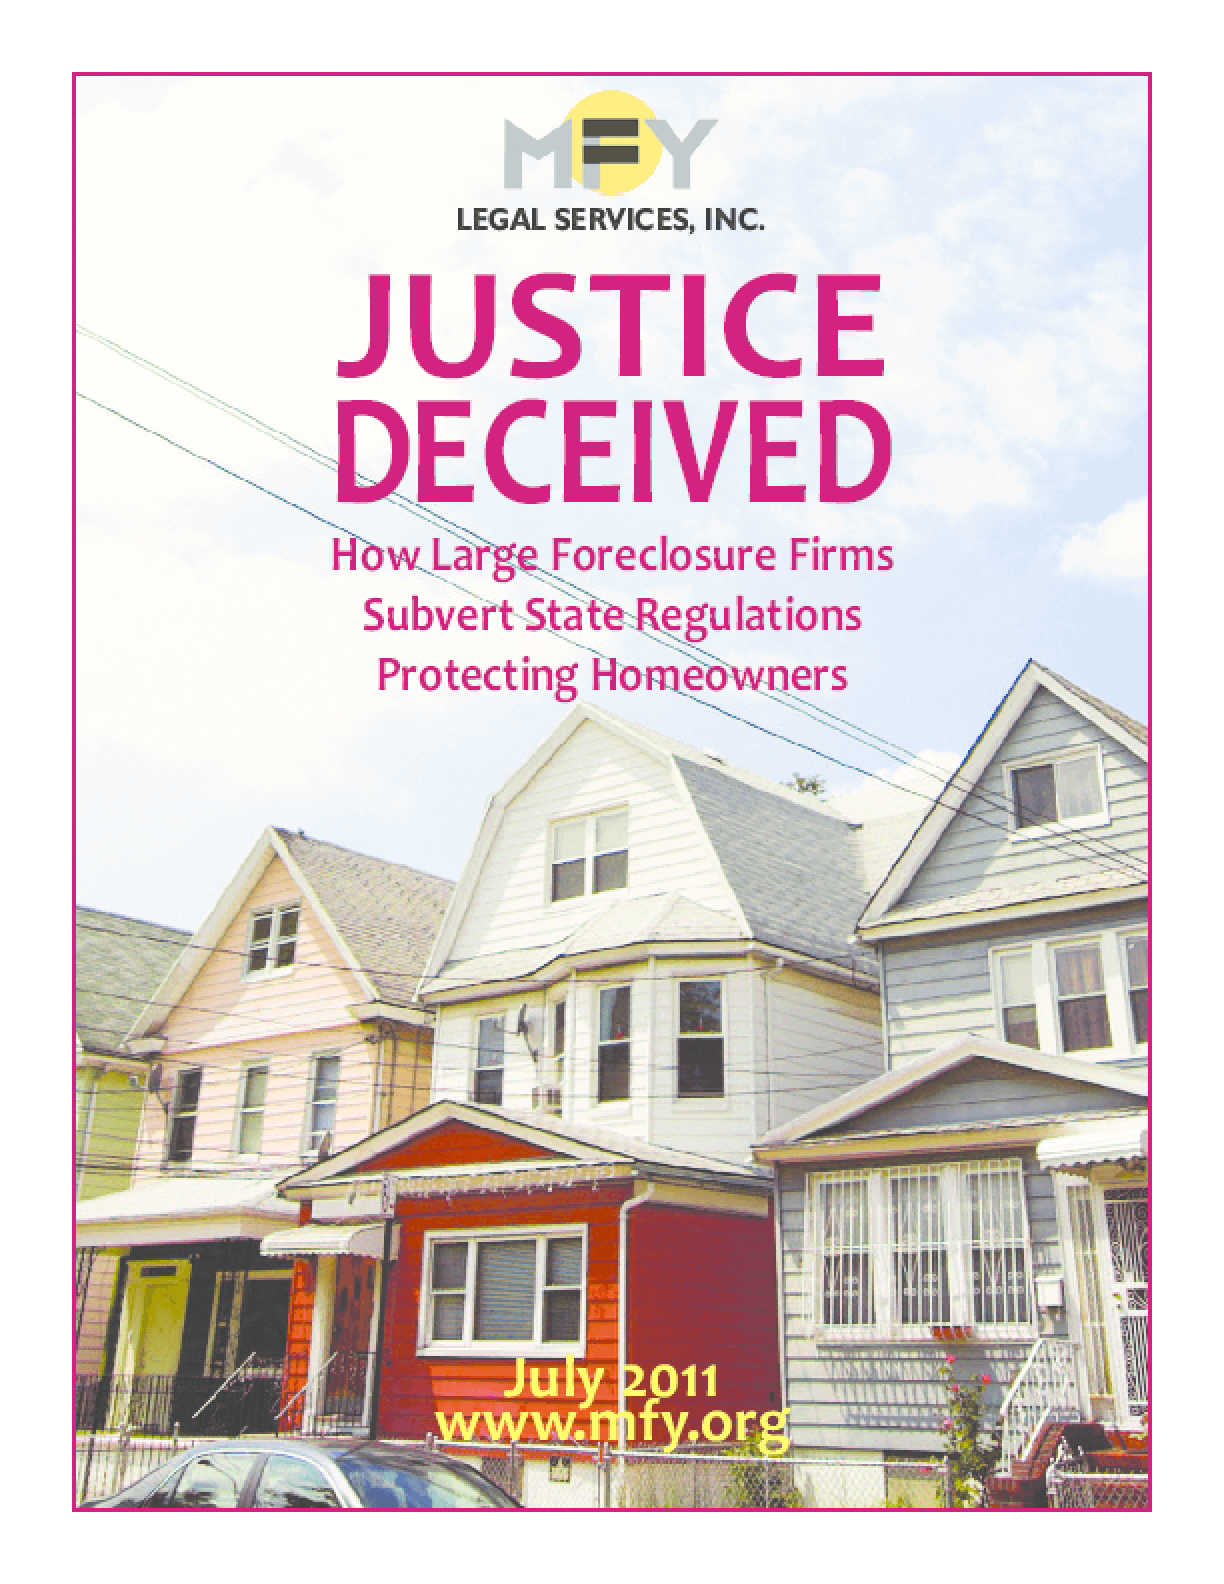 Justice Deceived: How Large Foreclosure Firms Subvert State Regulations Protecting Homeowners